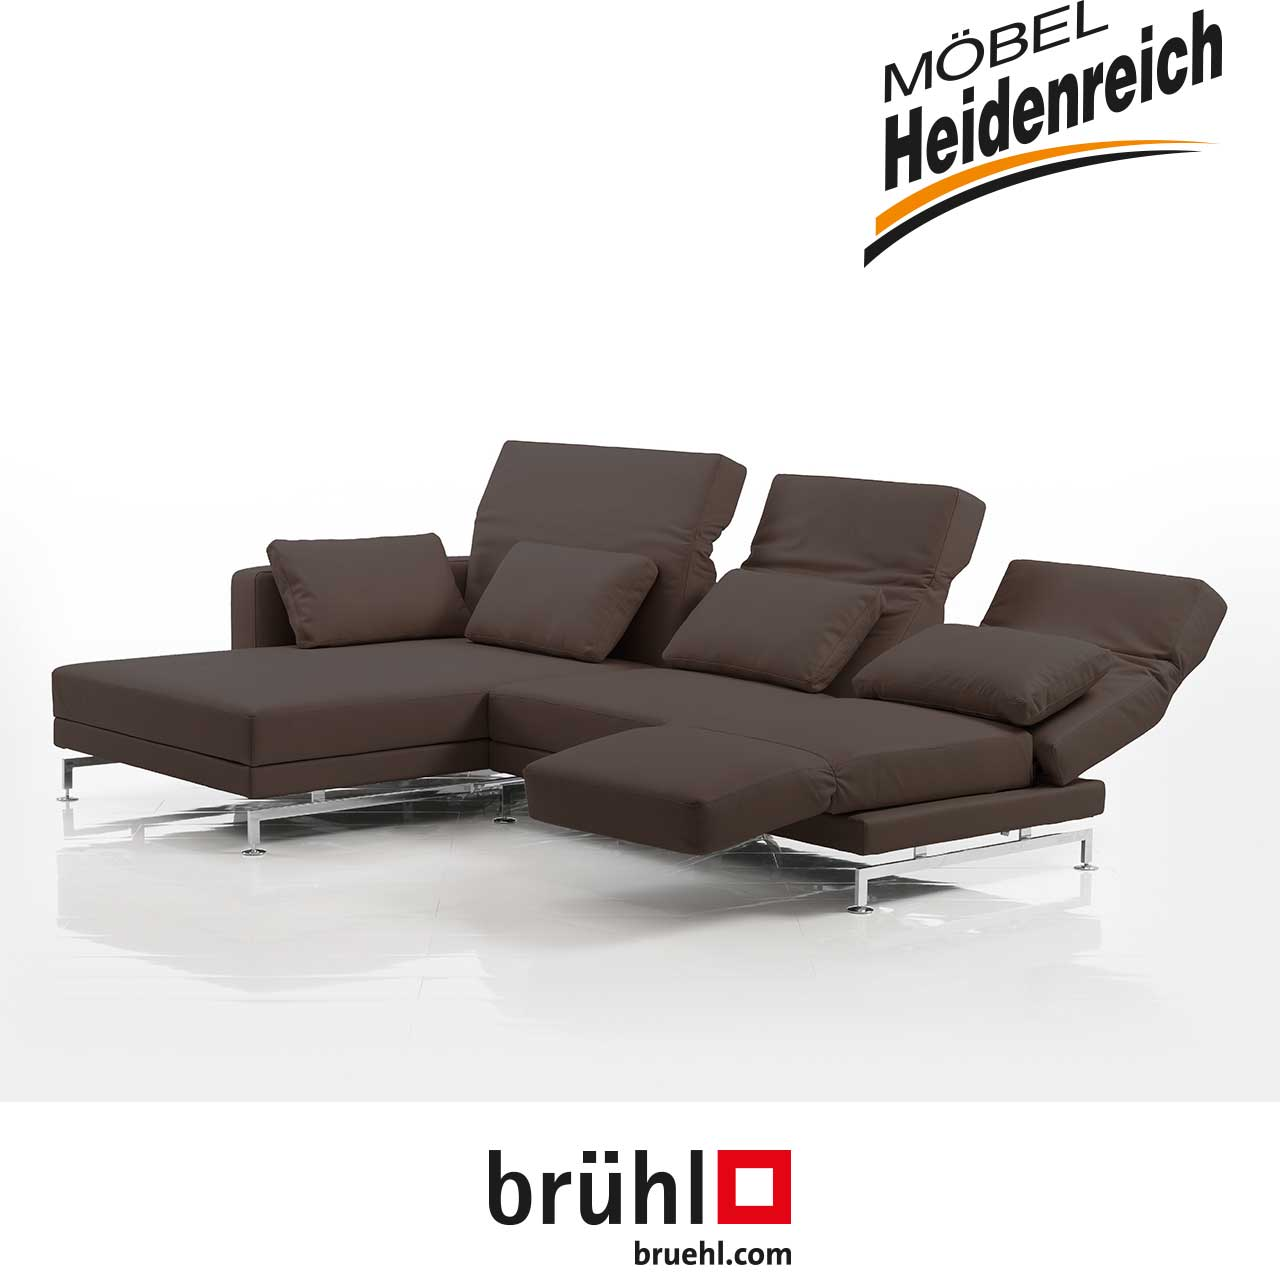 ecksofas br hl marken m bel heidenreich. Black Bedroom Furniture Sets. Home Design Ideas